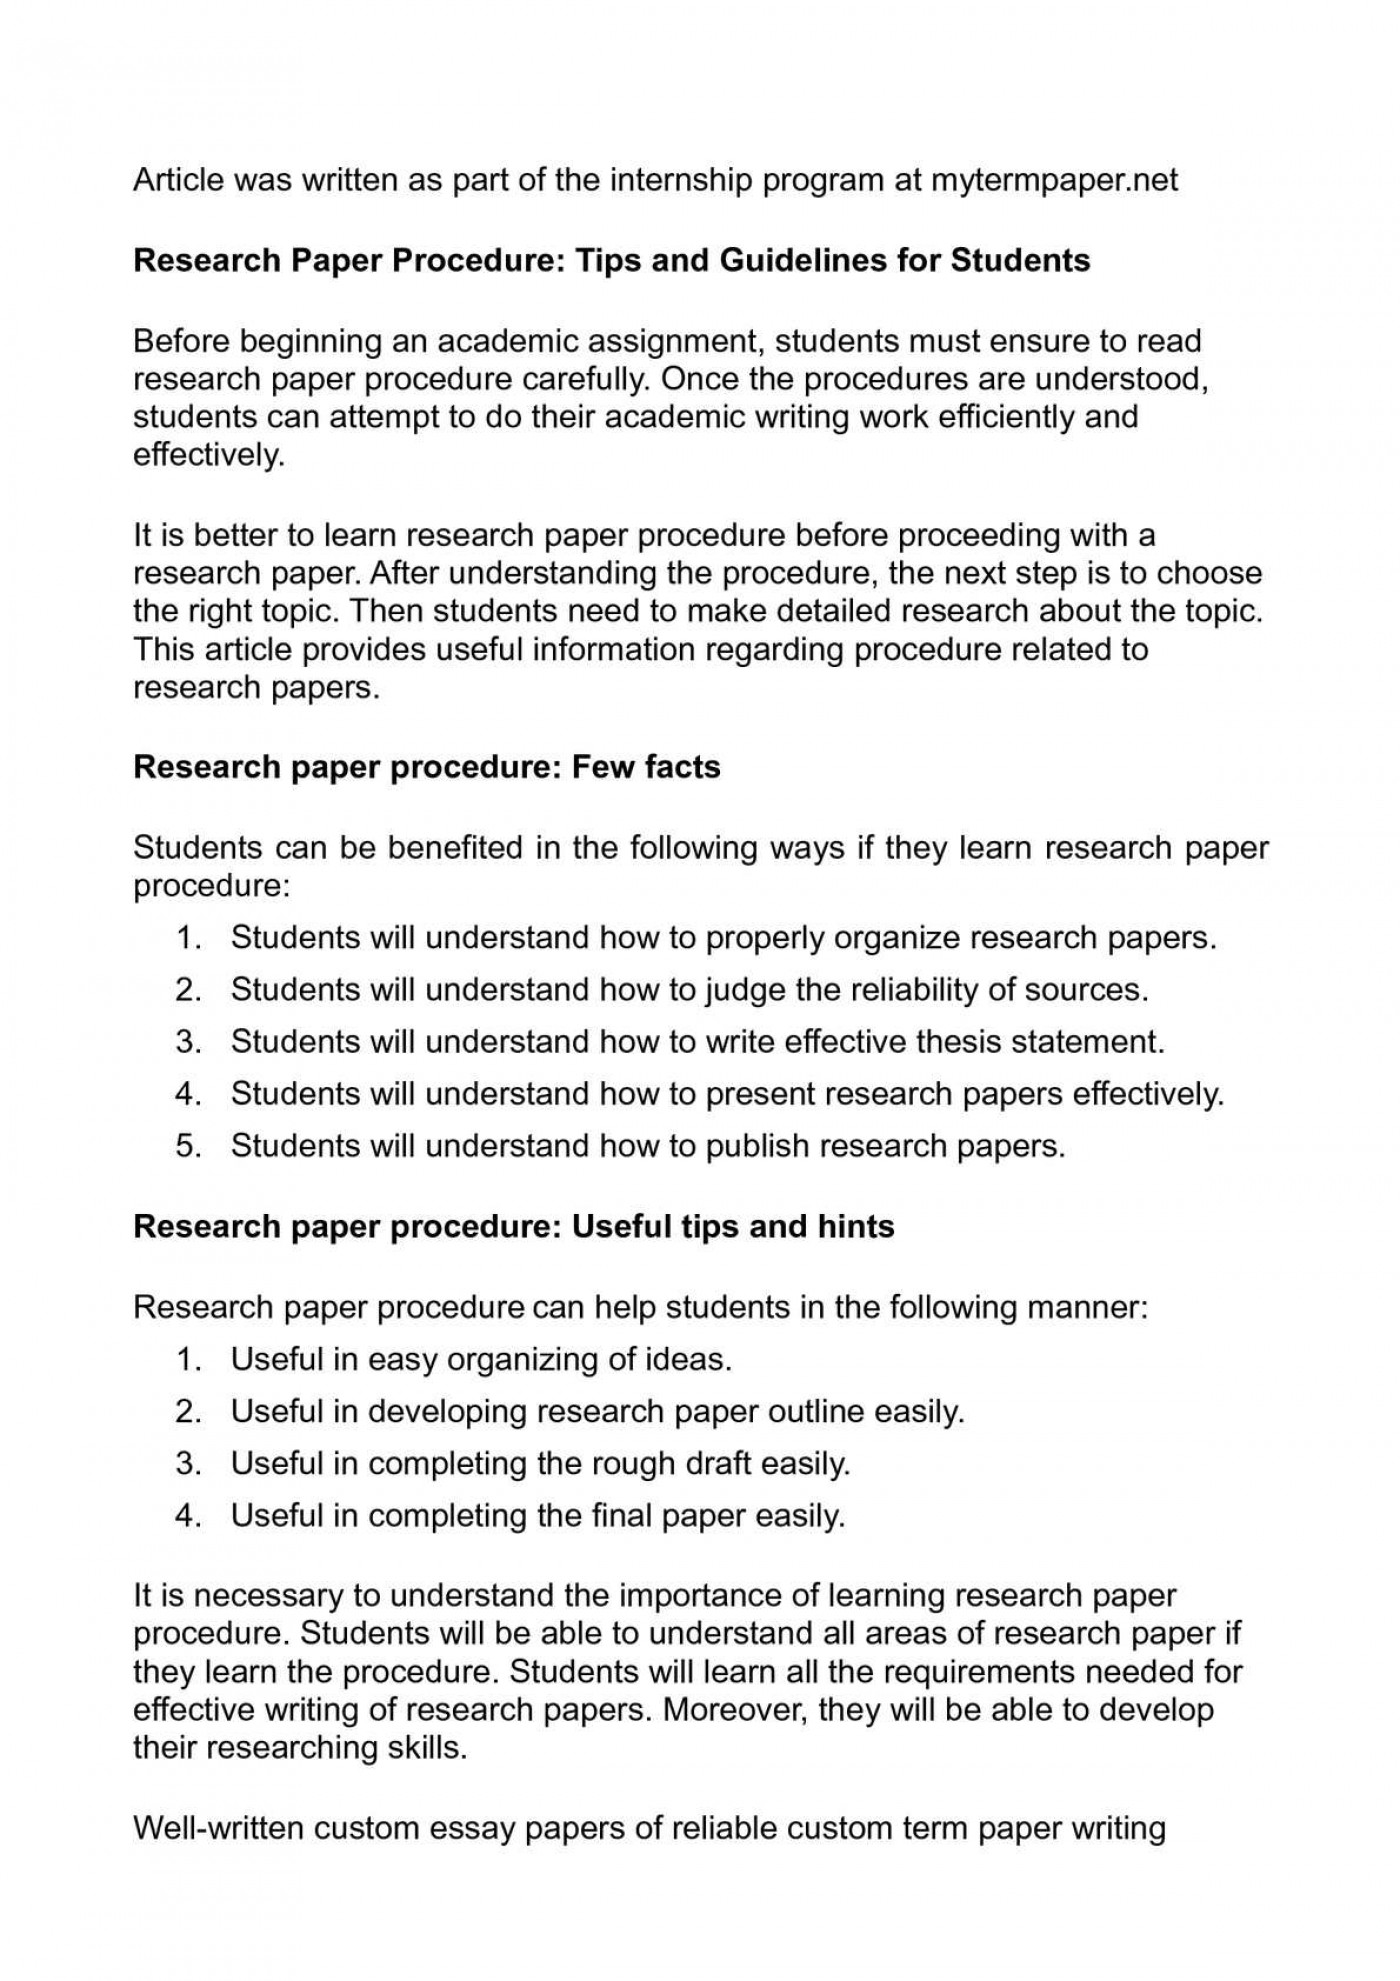 018 How To Do Research Paper Marvelous Read Papers Fast Outline Write A Owl Purdue 1400